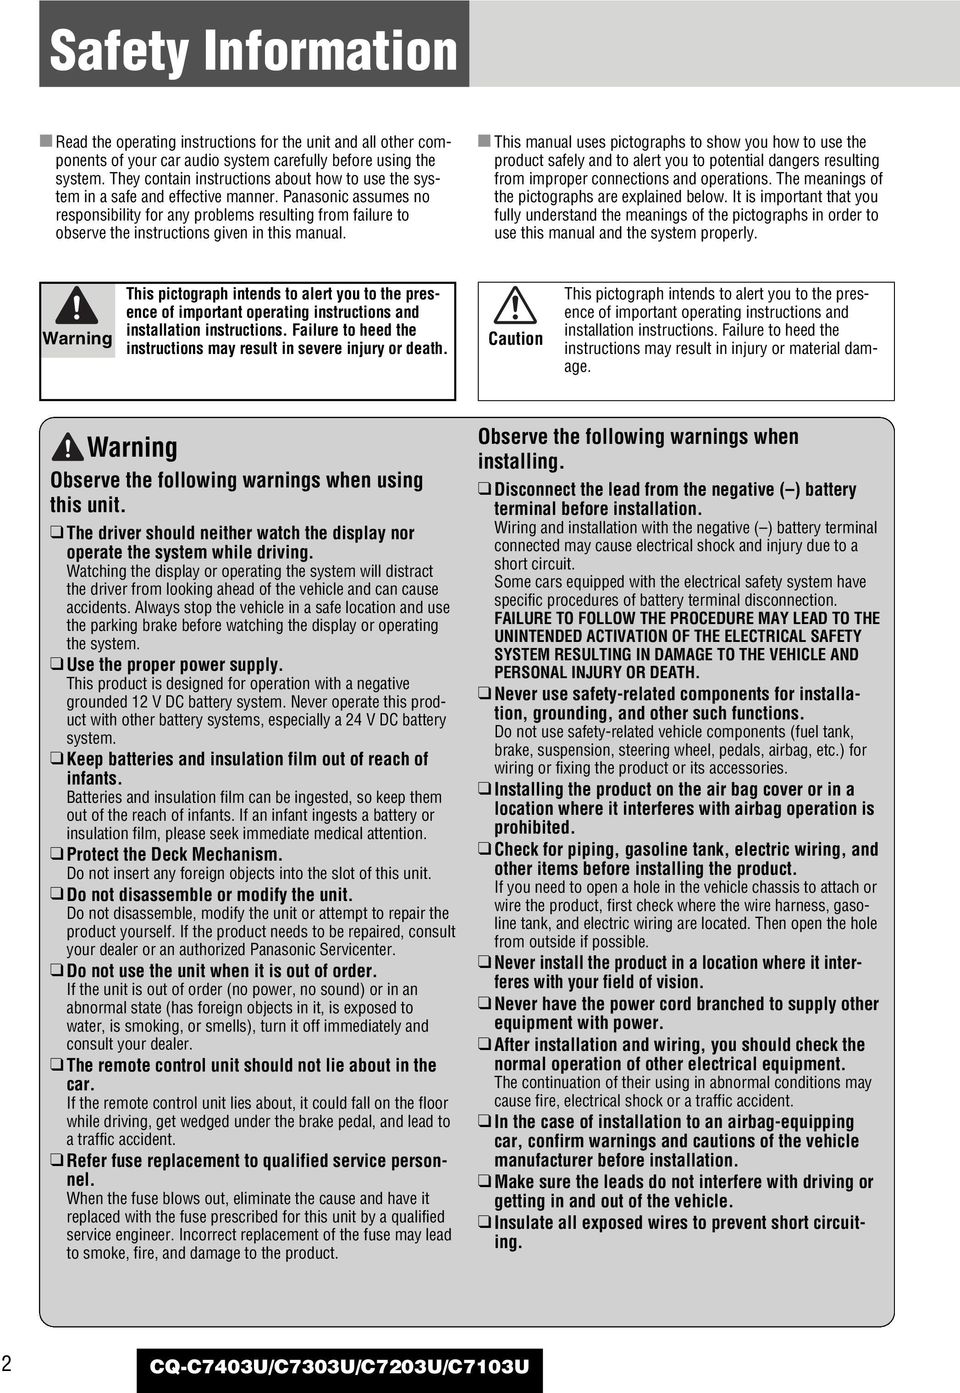 Panasonic assumes no responsibility for any problems resulting from failure to observe the instructions given in this manual.